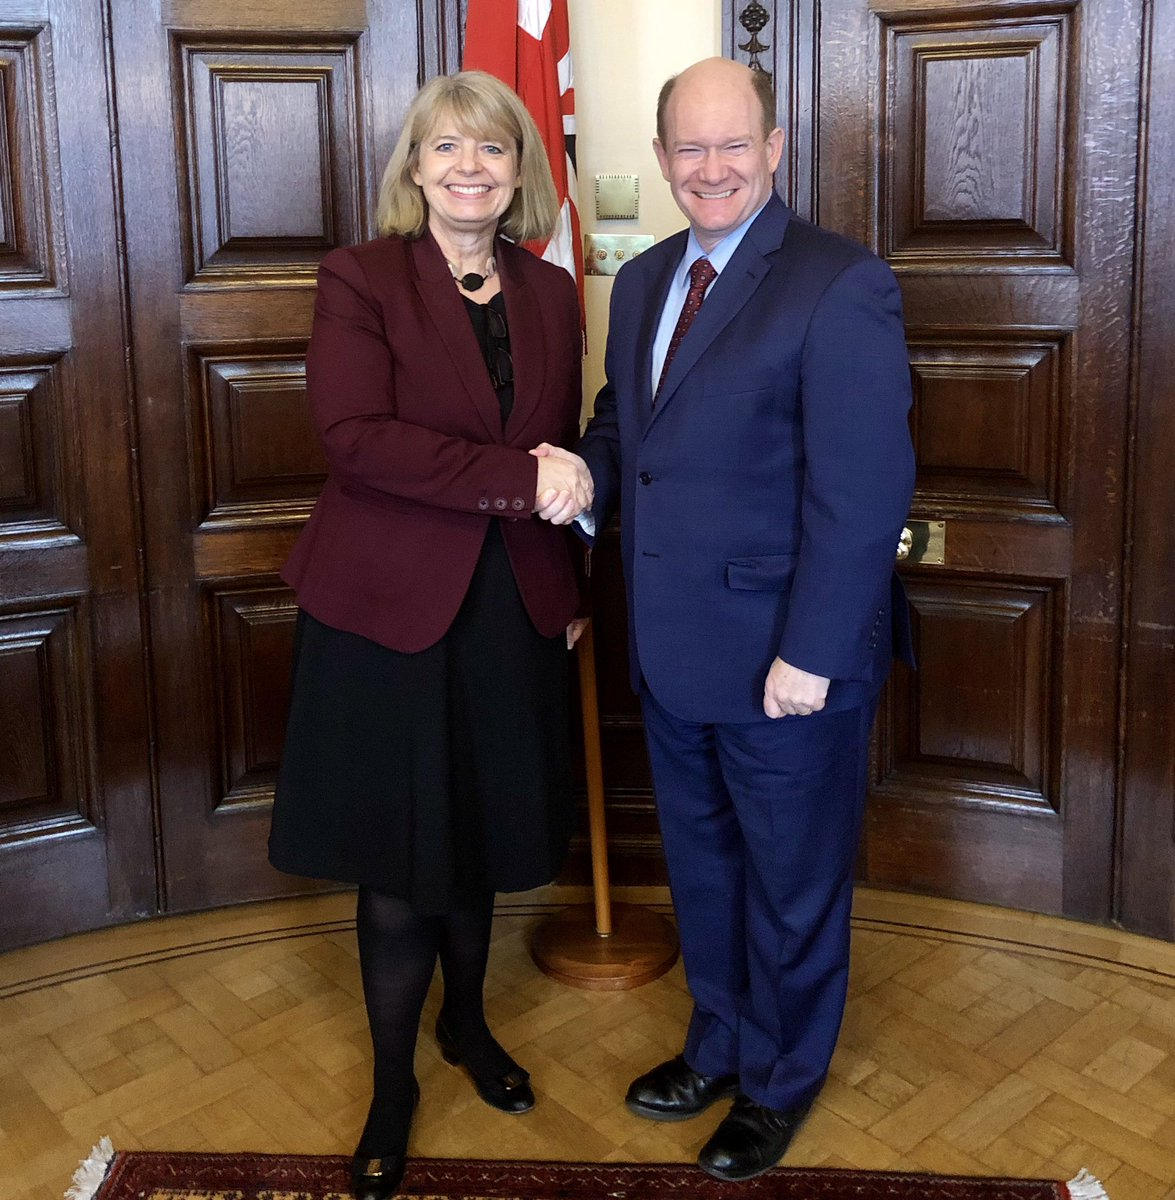 During my visit to London, I was honored to discuss the shared interests of the US and the U.K. in Africa with Minister @HBaldwinMP We have a lot of good work we can do together to help an increasingly important continent of 54 countries.